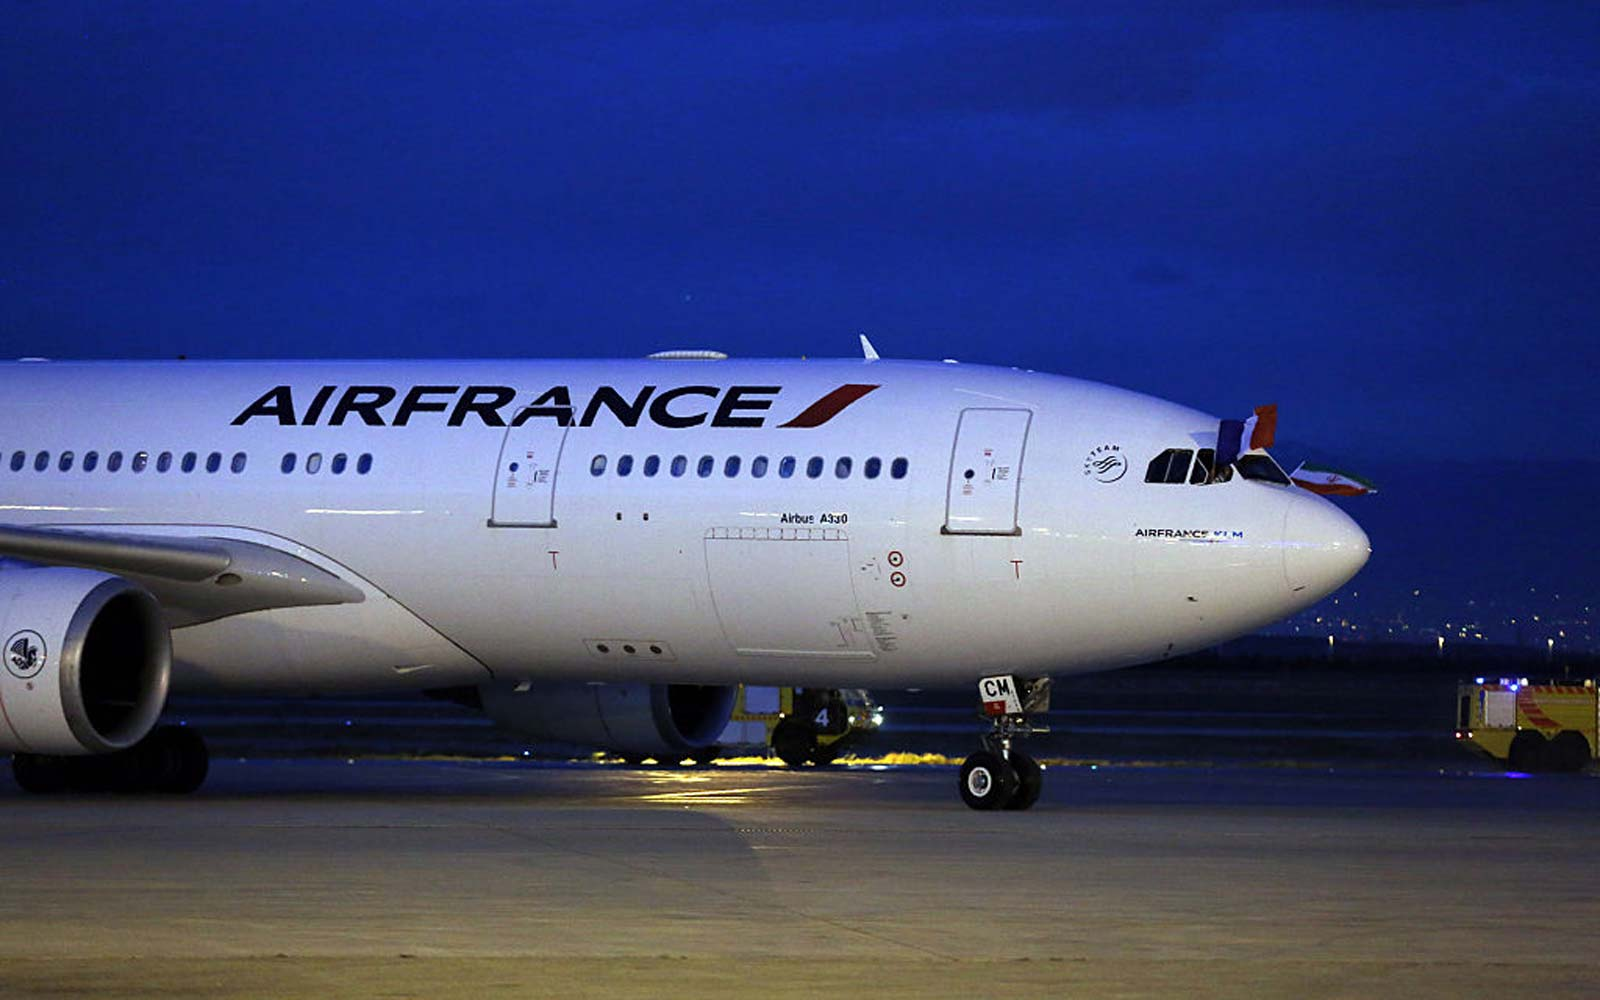 An Air France airliner arrives at the Imam Khomeini international airport in the Iranian capital Tehran